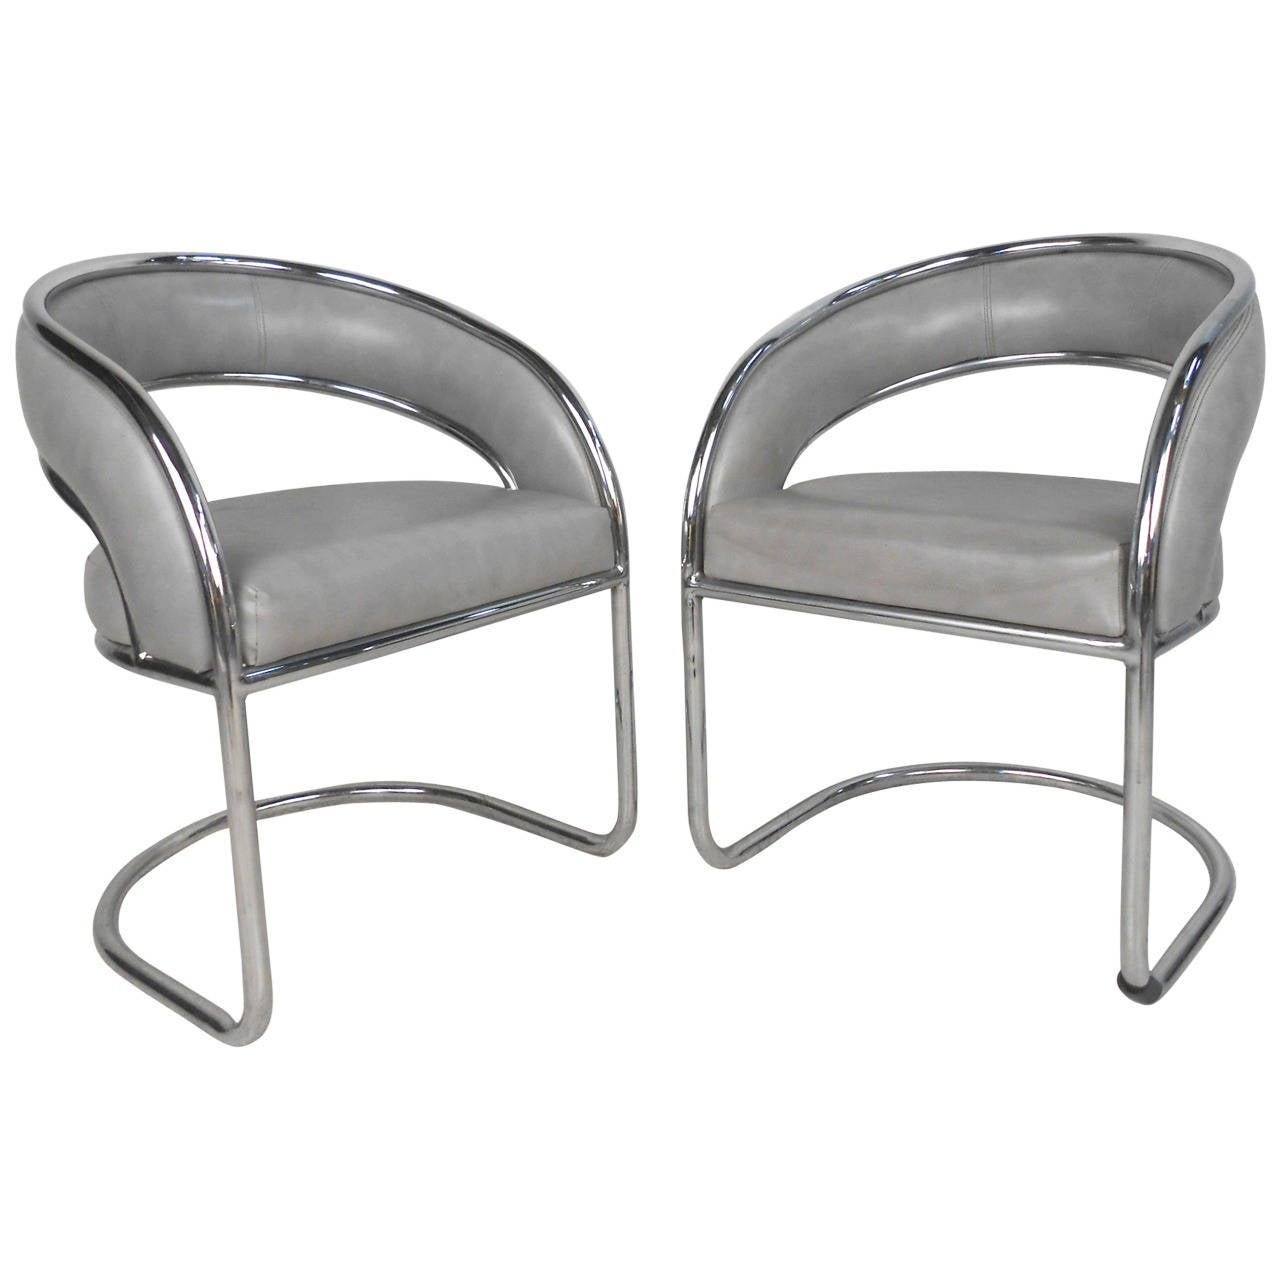 Set Of Unique Mid Century Modern Cantilever Dining Chairs By Thonet For Sale